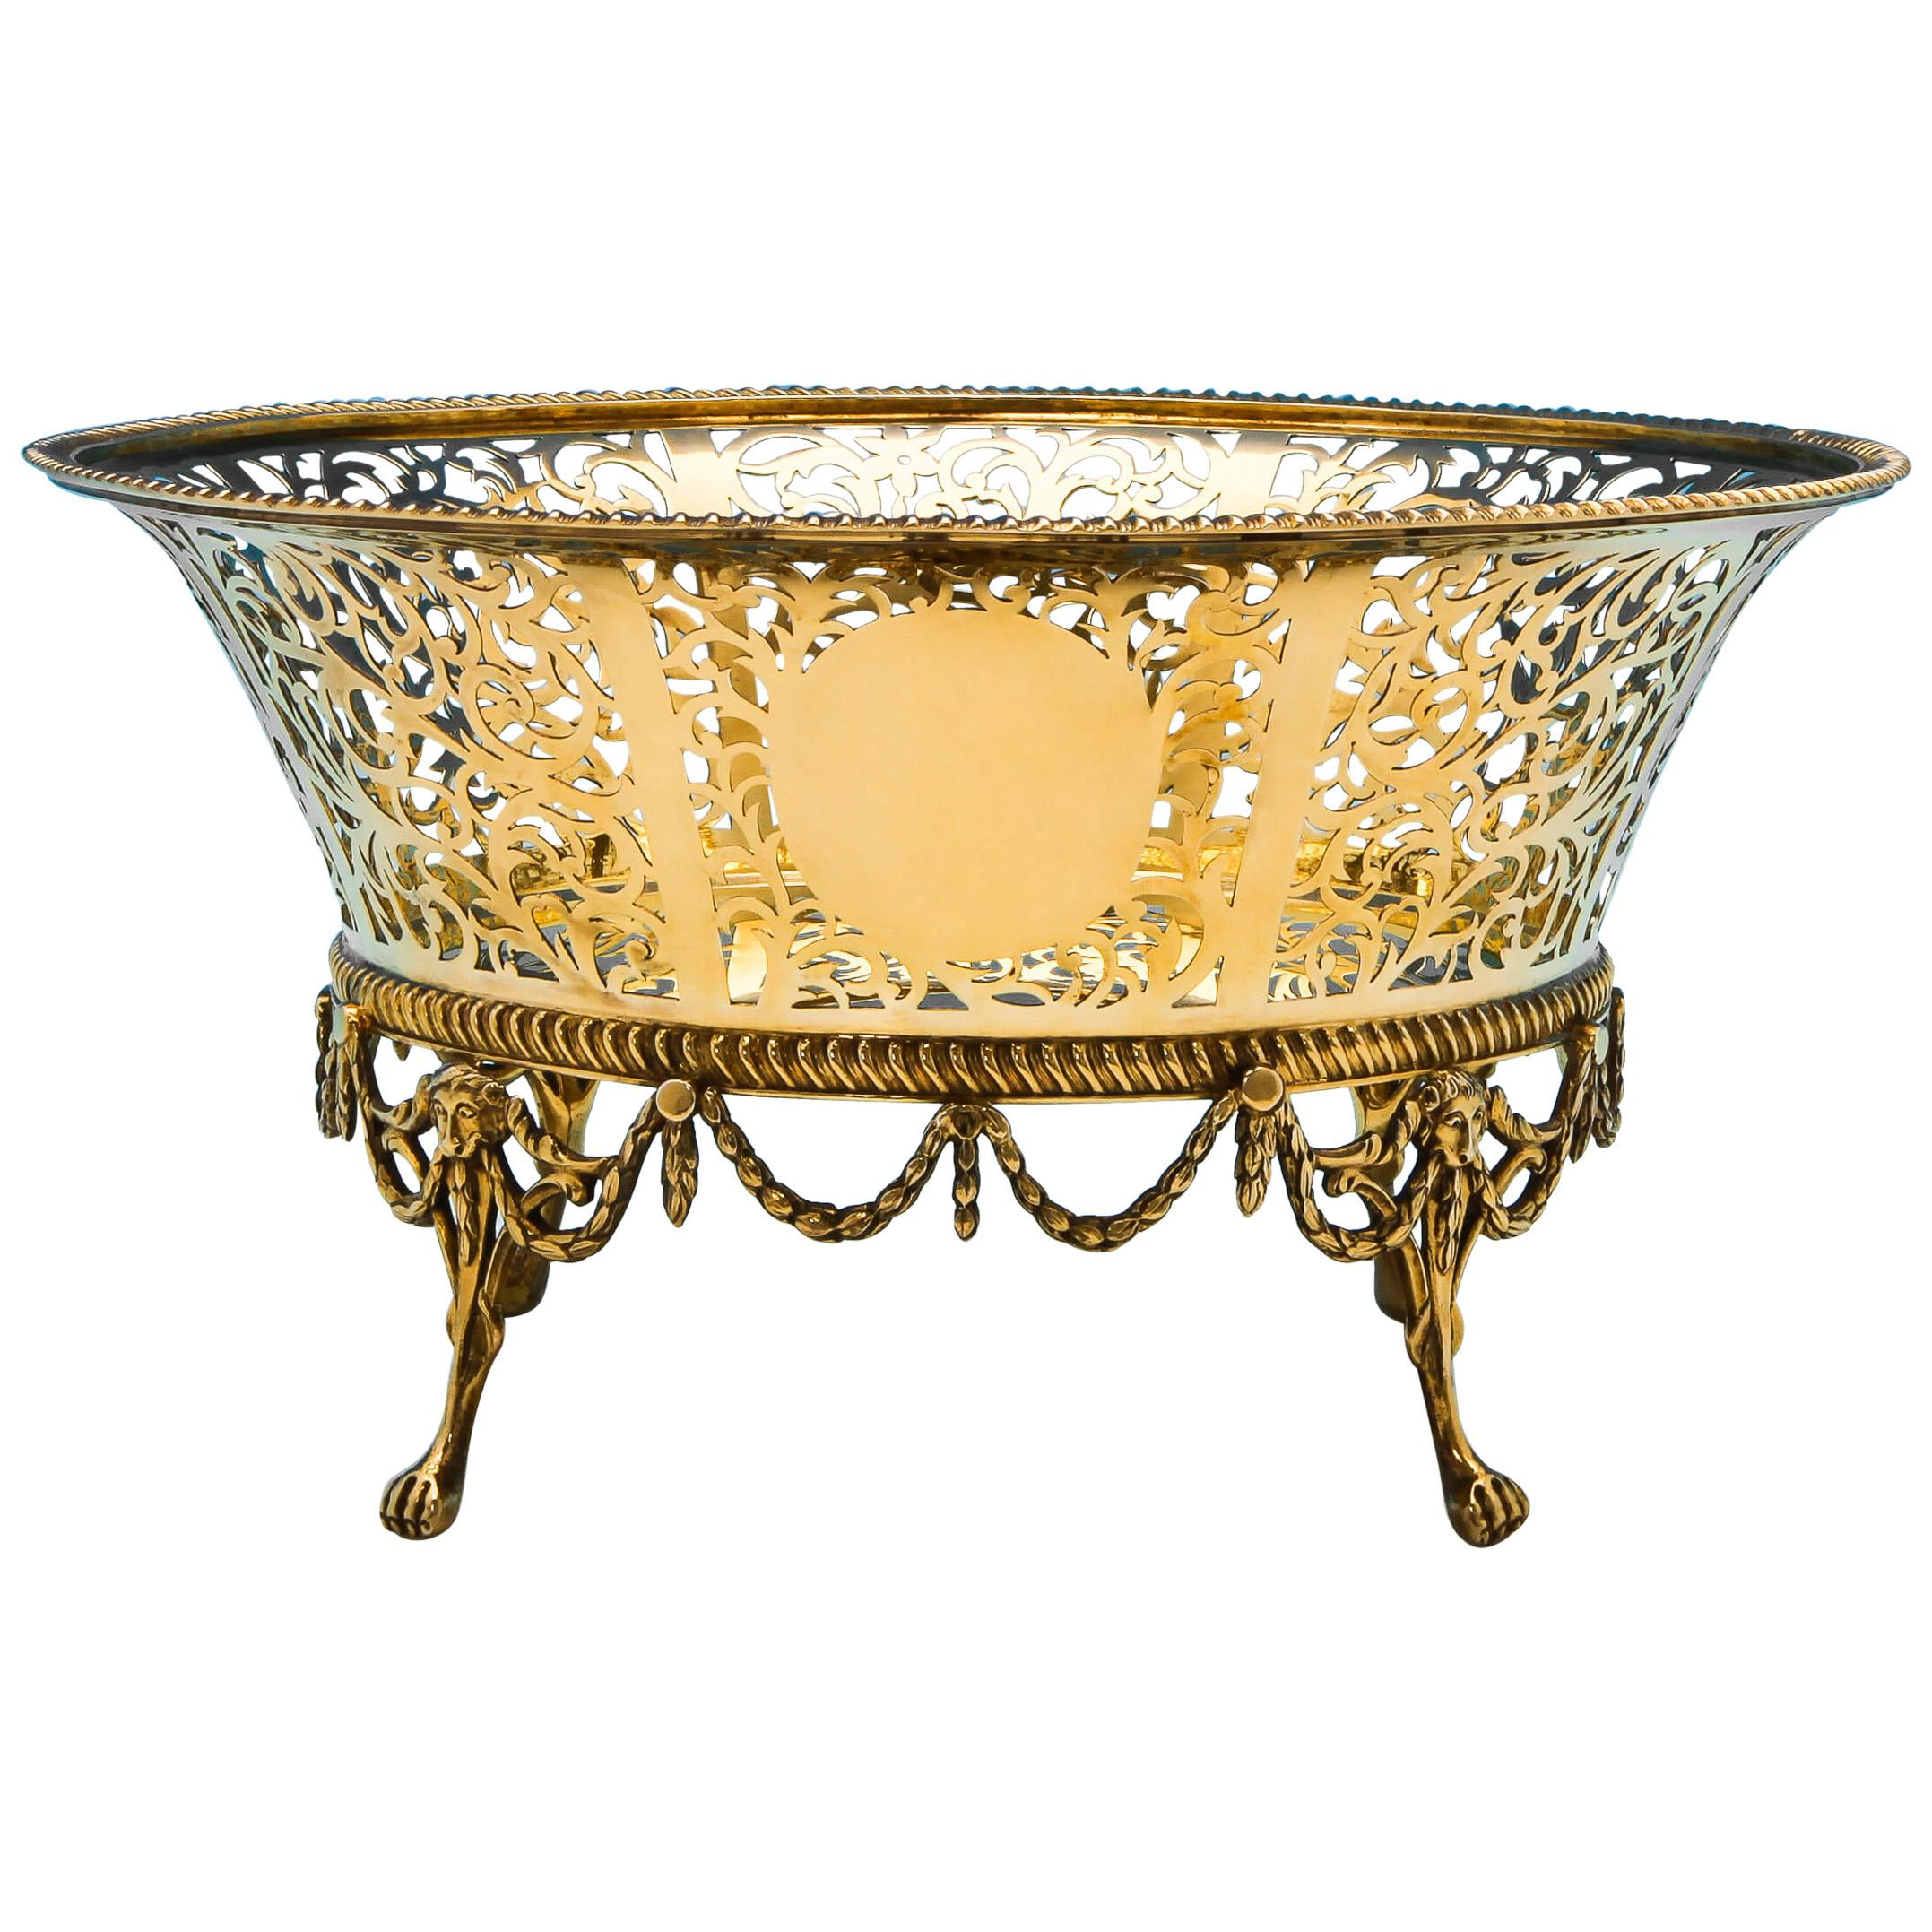 Gold Plated Antique Sterling Silver Bowl from 1909 by Goldsmiths & Silversmiths